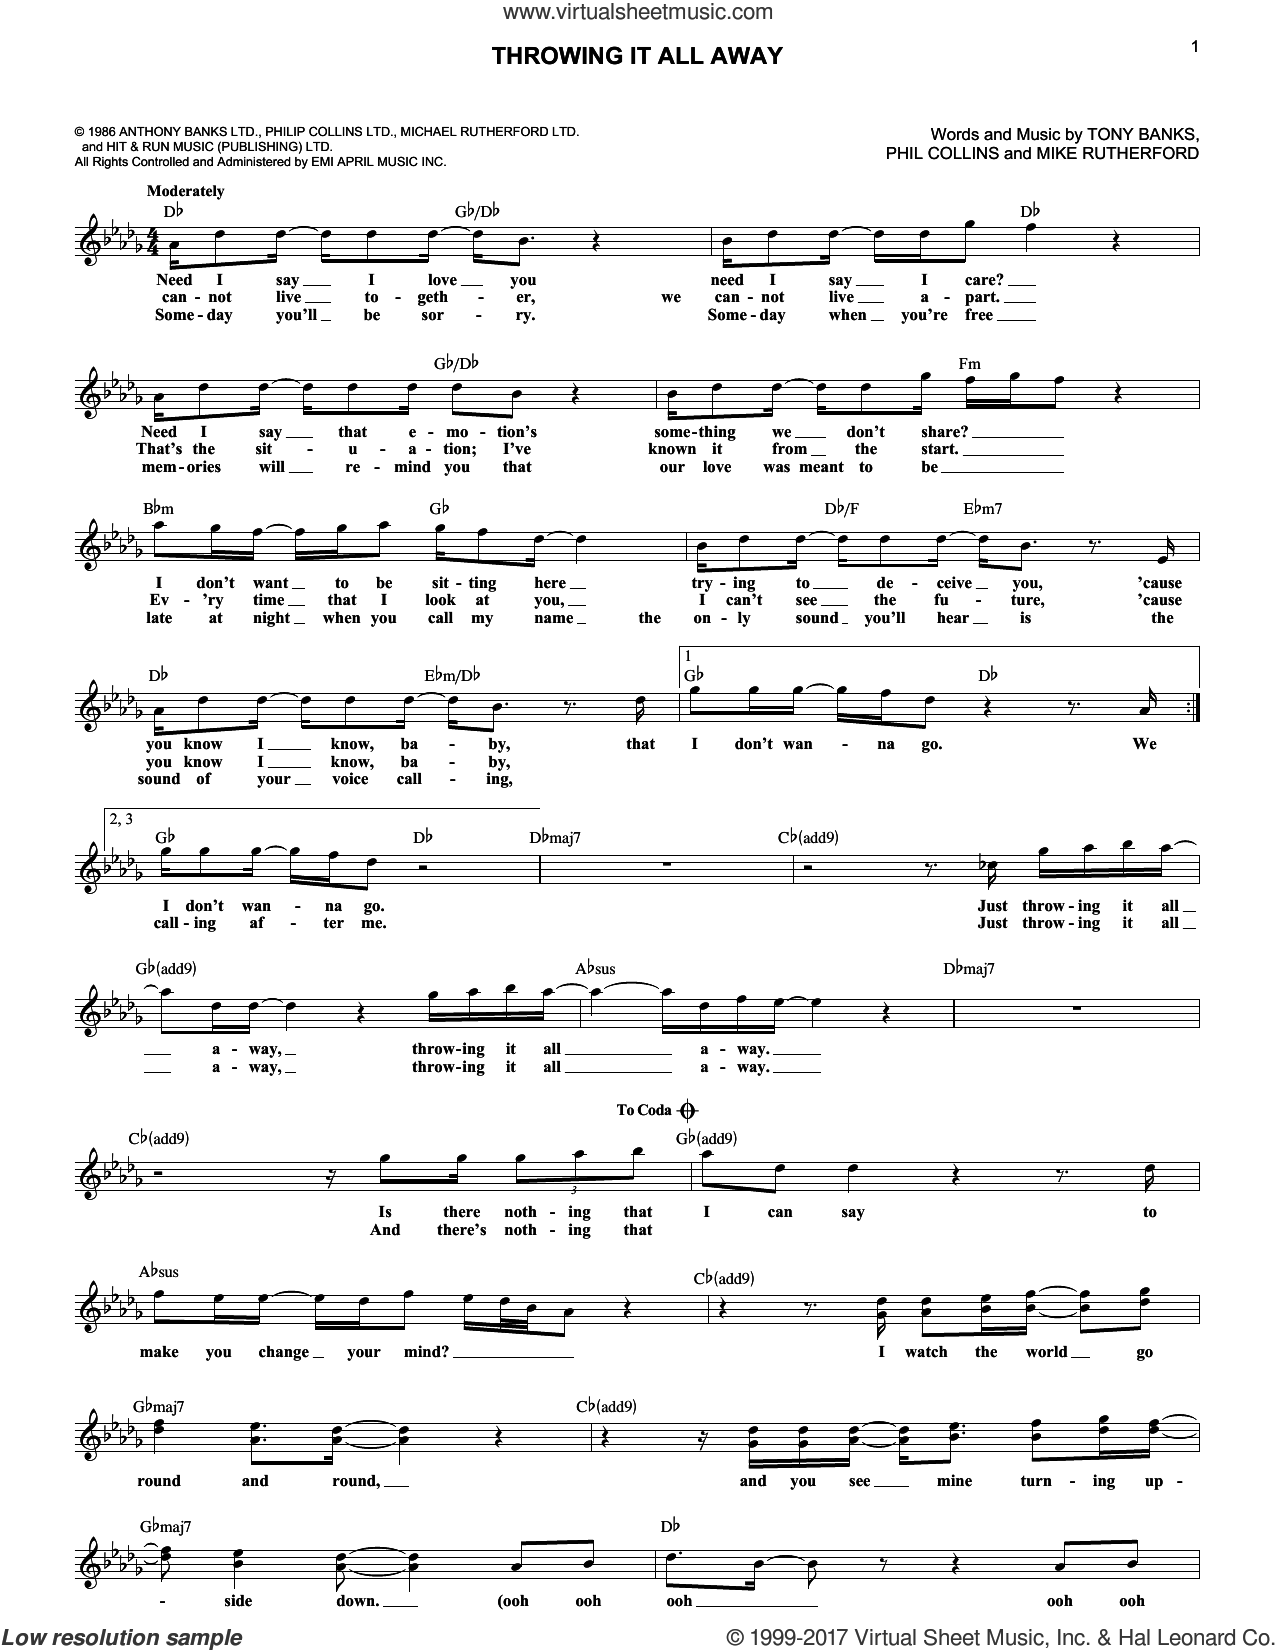 Throwing It All Away sheet music for voice and other instruments (fake book) by Genesis, Mike Rutherford, Phil Collins and Tony Banks, intermediate skill level